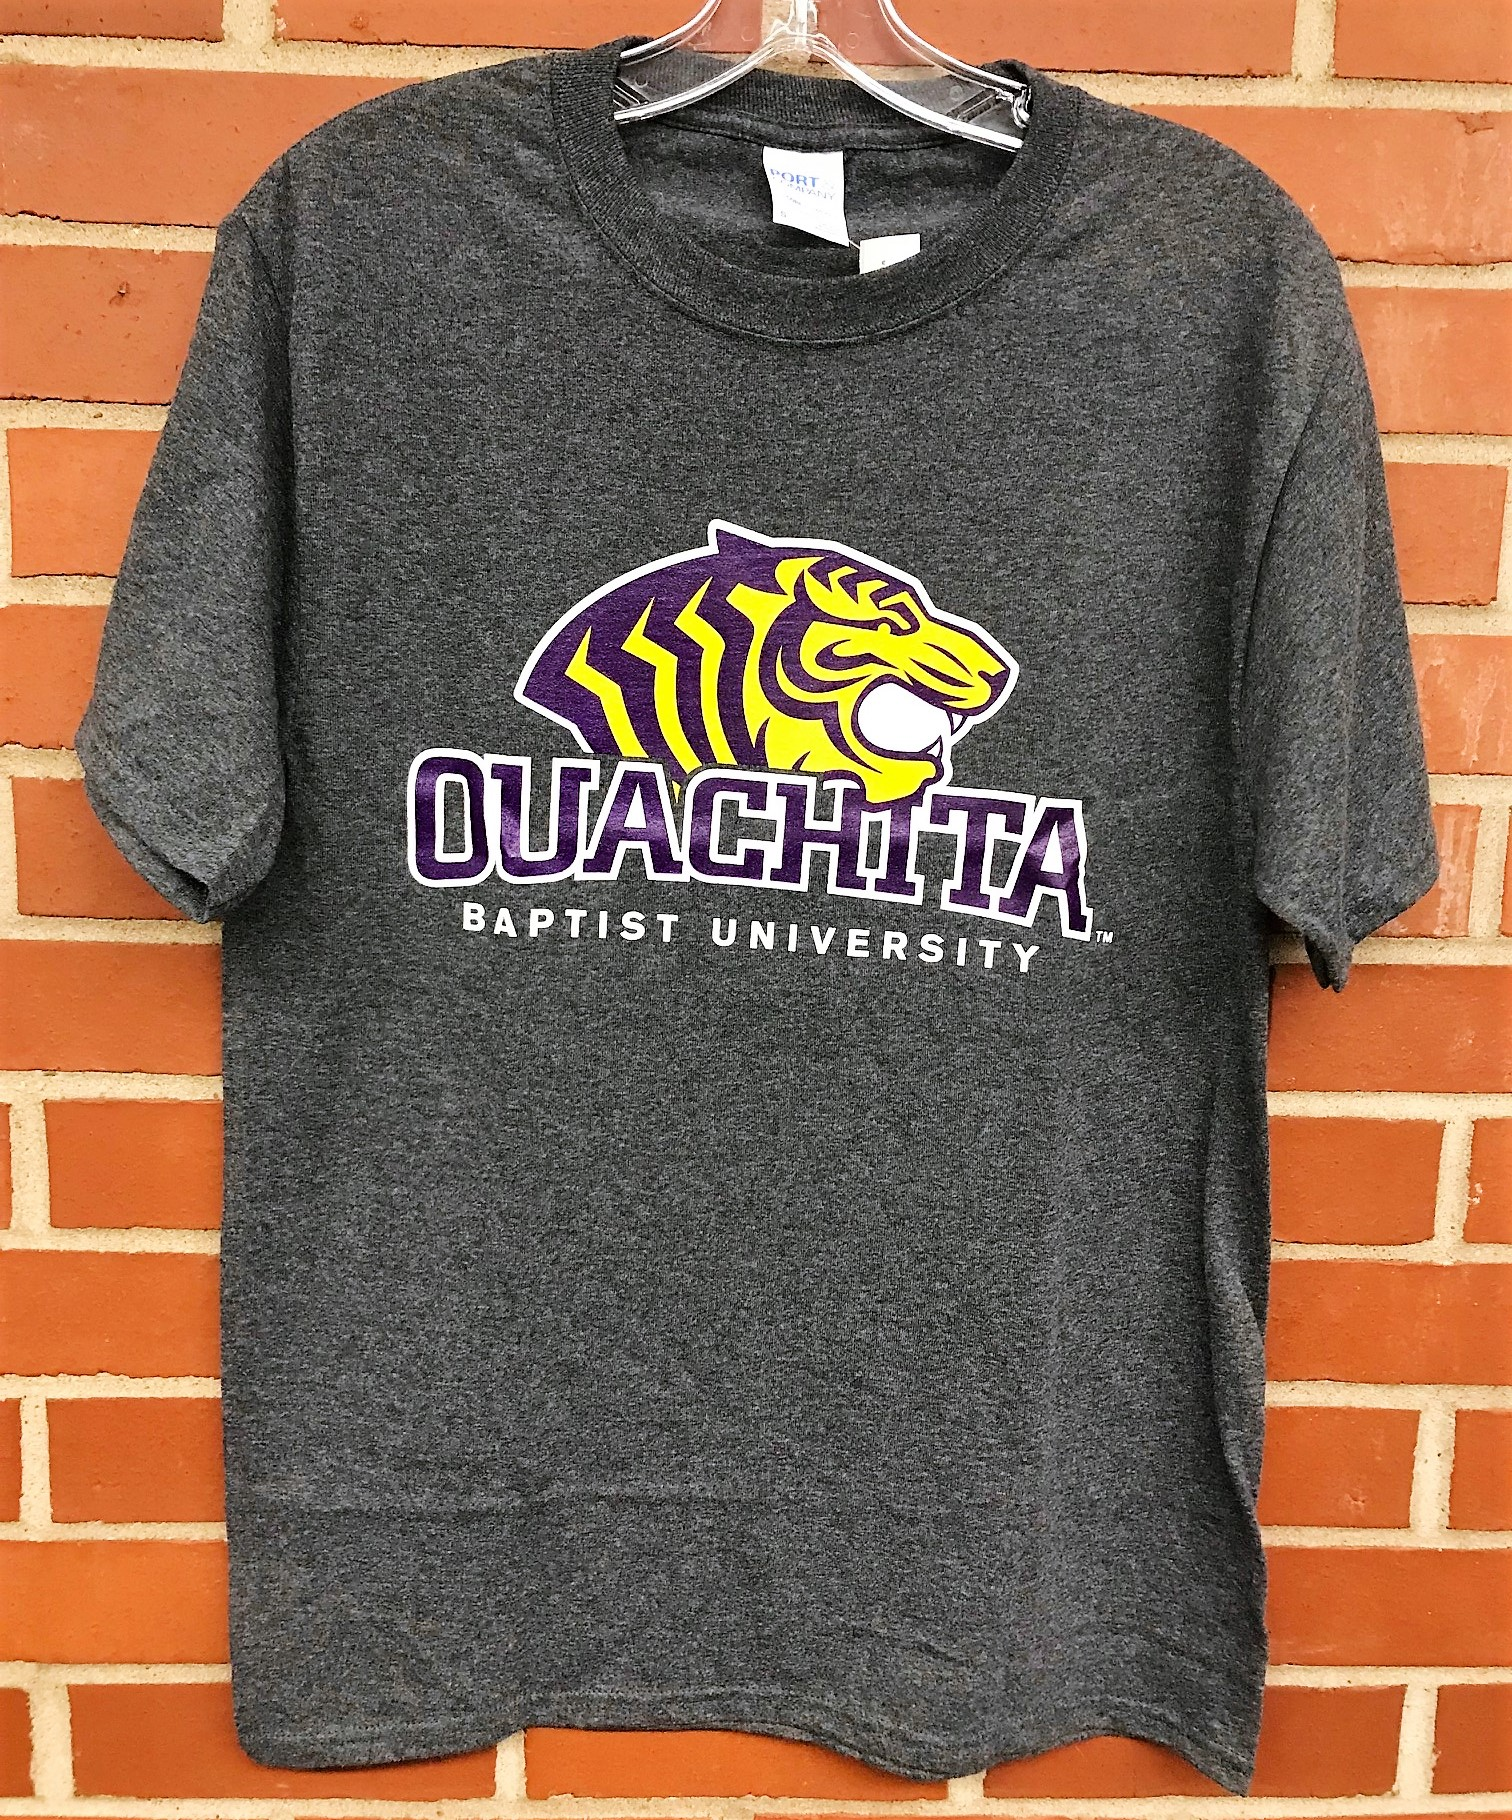 OUACHITA BAPTIST UNIVERSITY W/ TIGER LOGO SS TEE